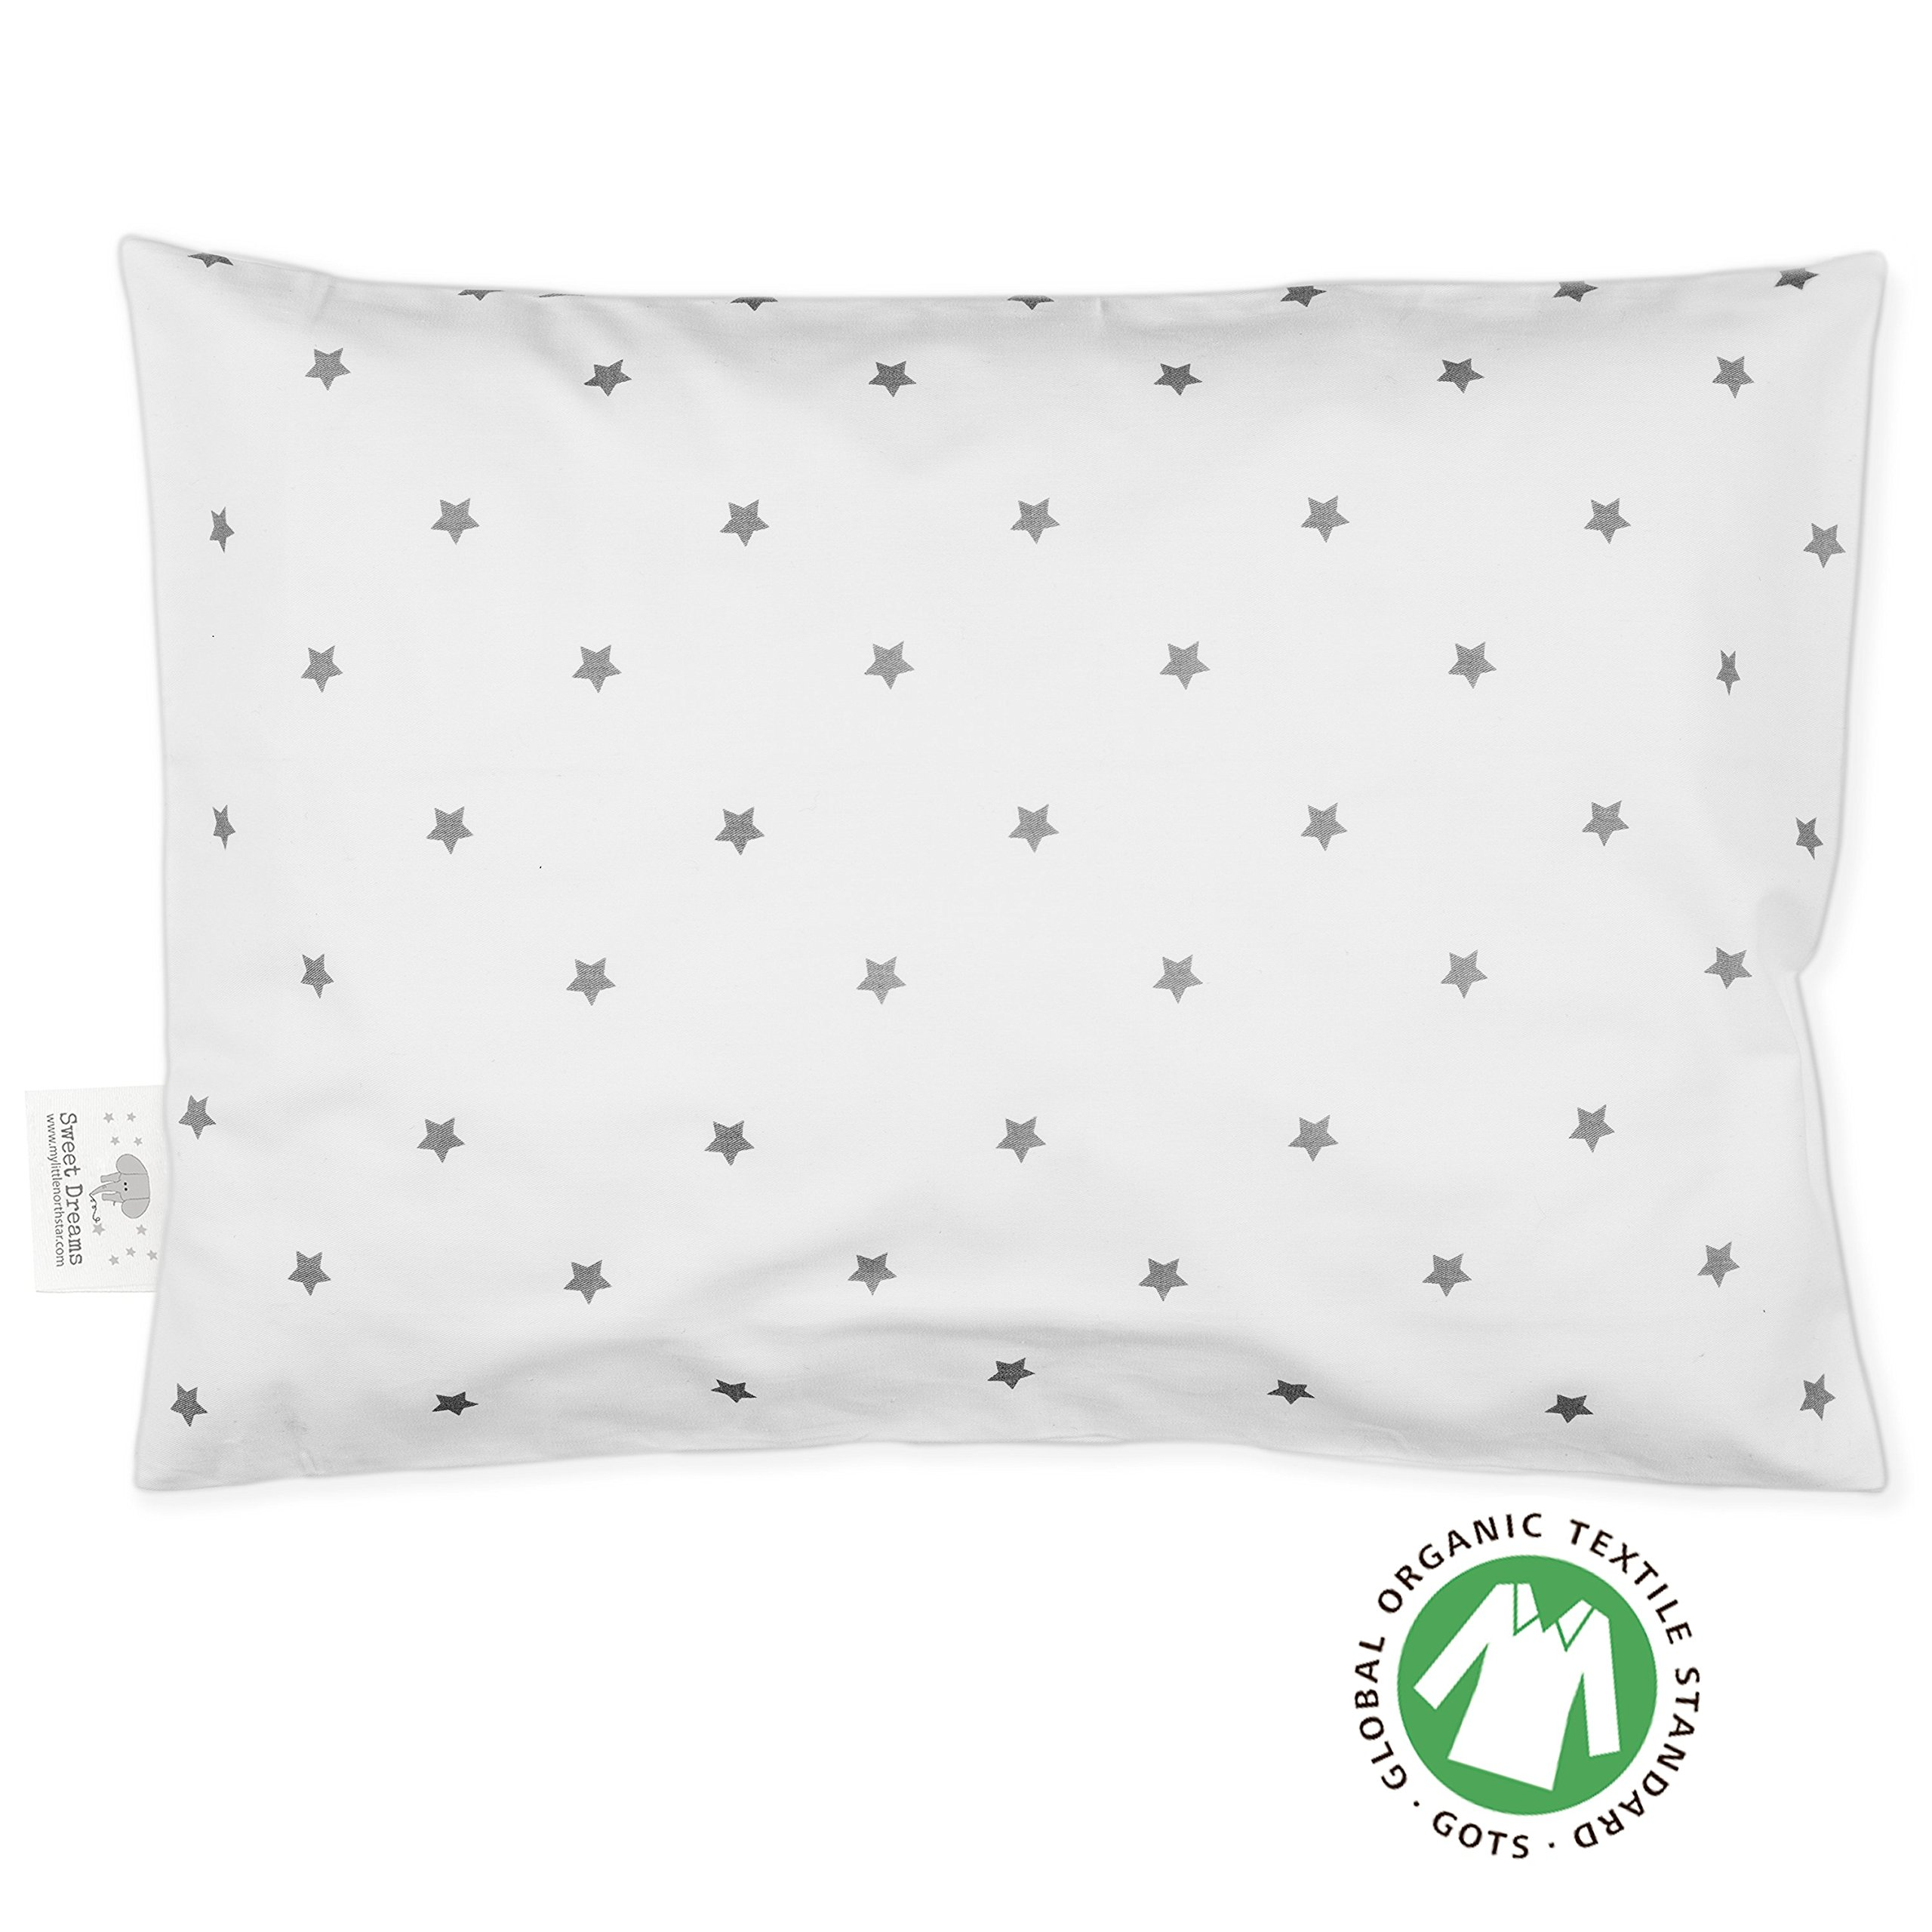 Toddler Pillowcase - 100% GOTS Certified Organic Cotton - Hypoallergenic Safe and Comfortable - No Harsh Chemicals on Your Toddler's Skin - White and Grey Stars